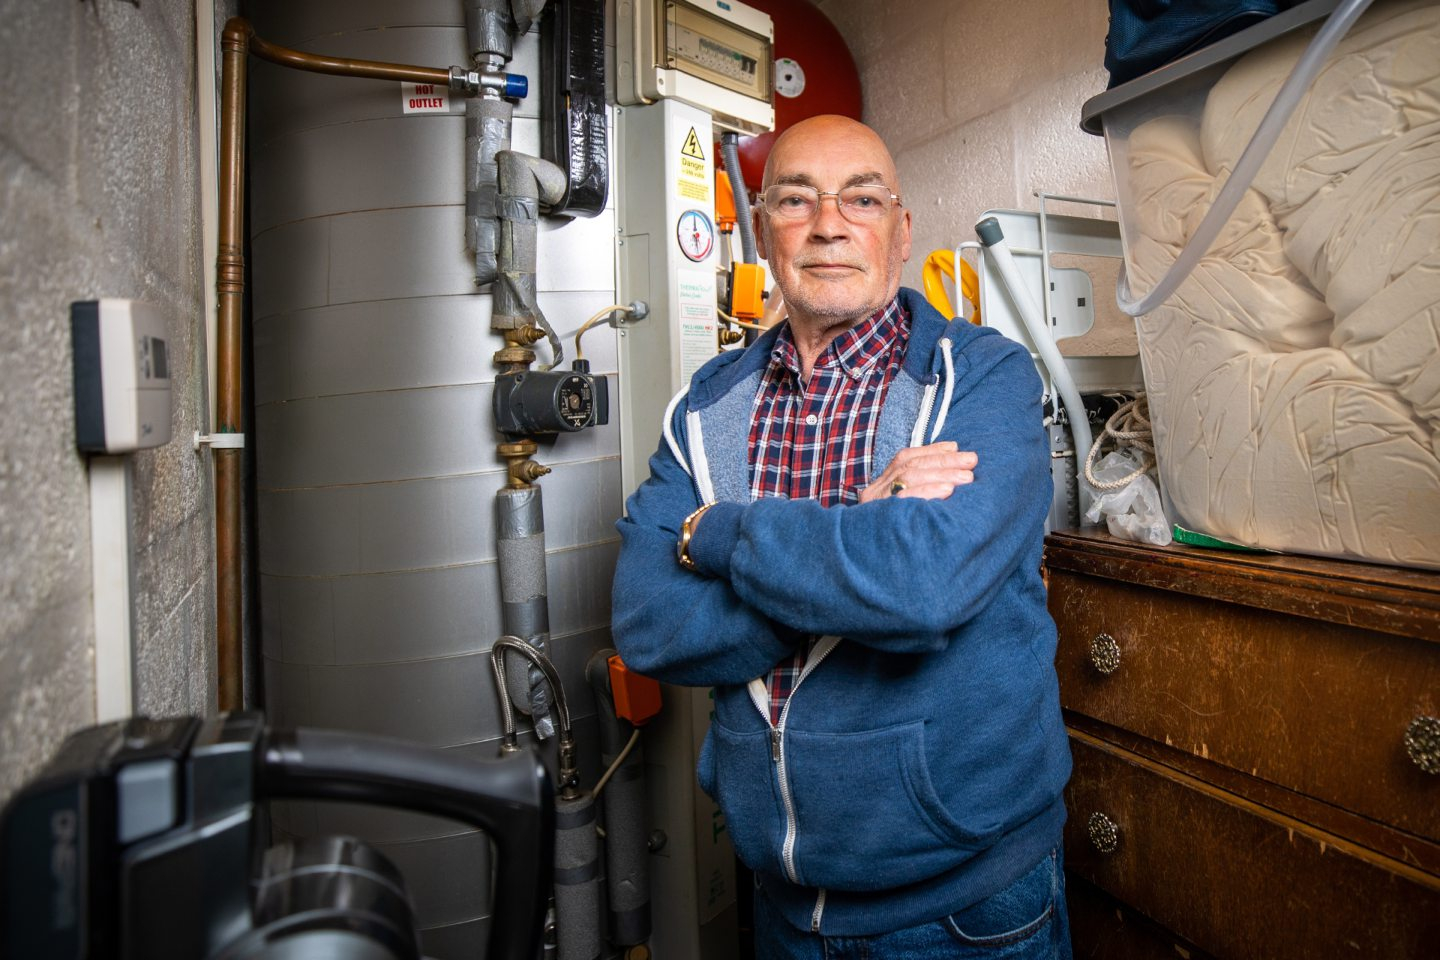 'We will be freezing in the winter': Dundee pensioner's fears over boiler issues - Evening Telegraph